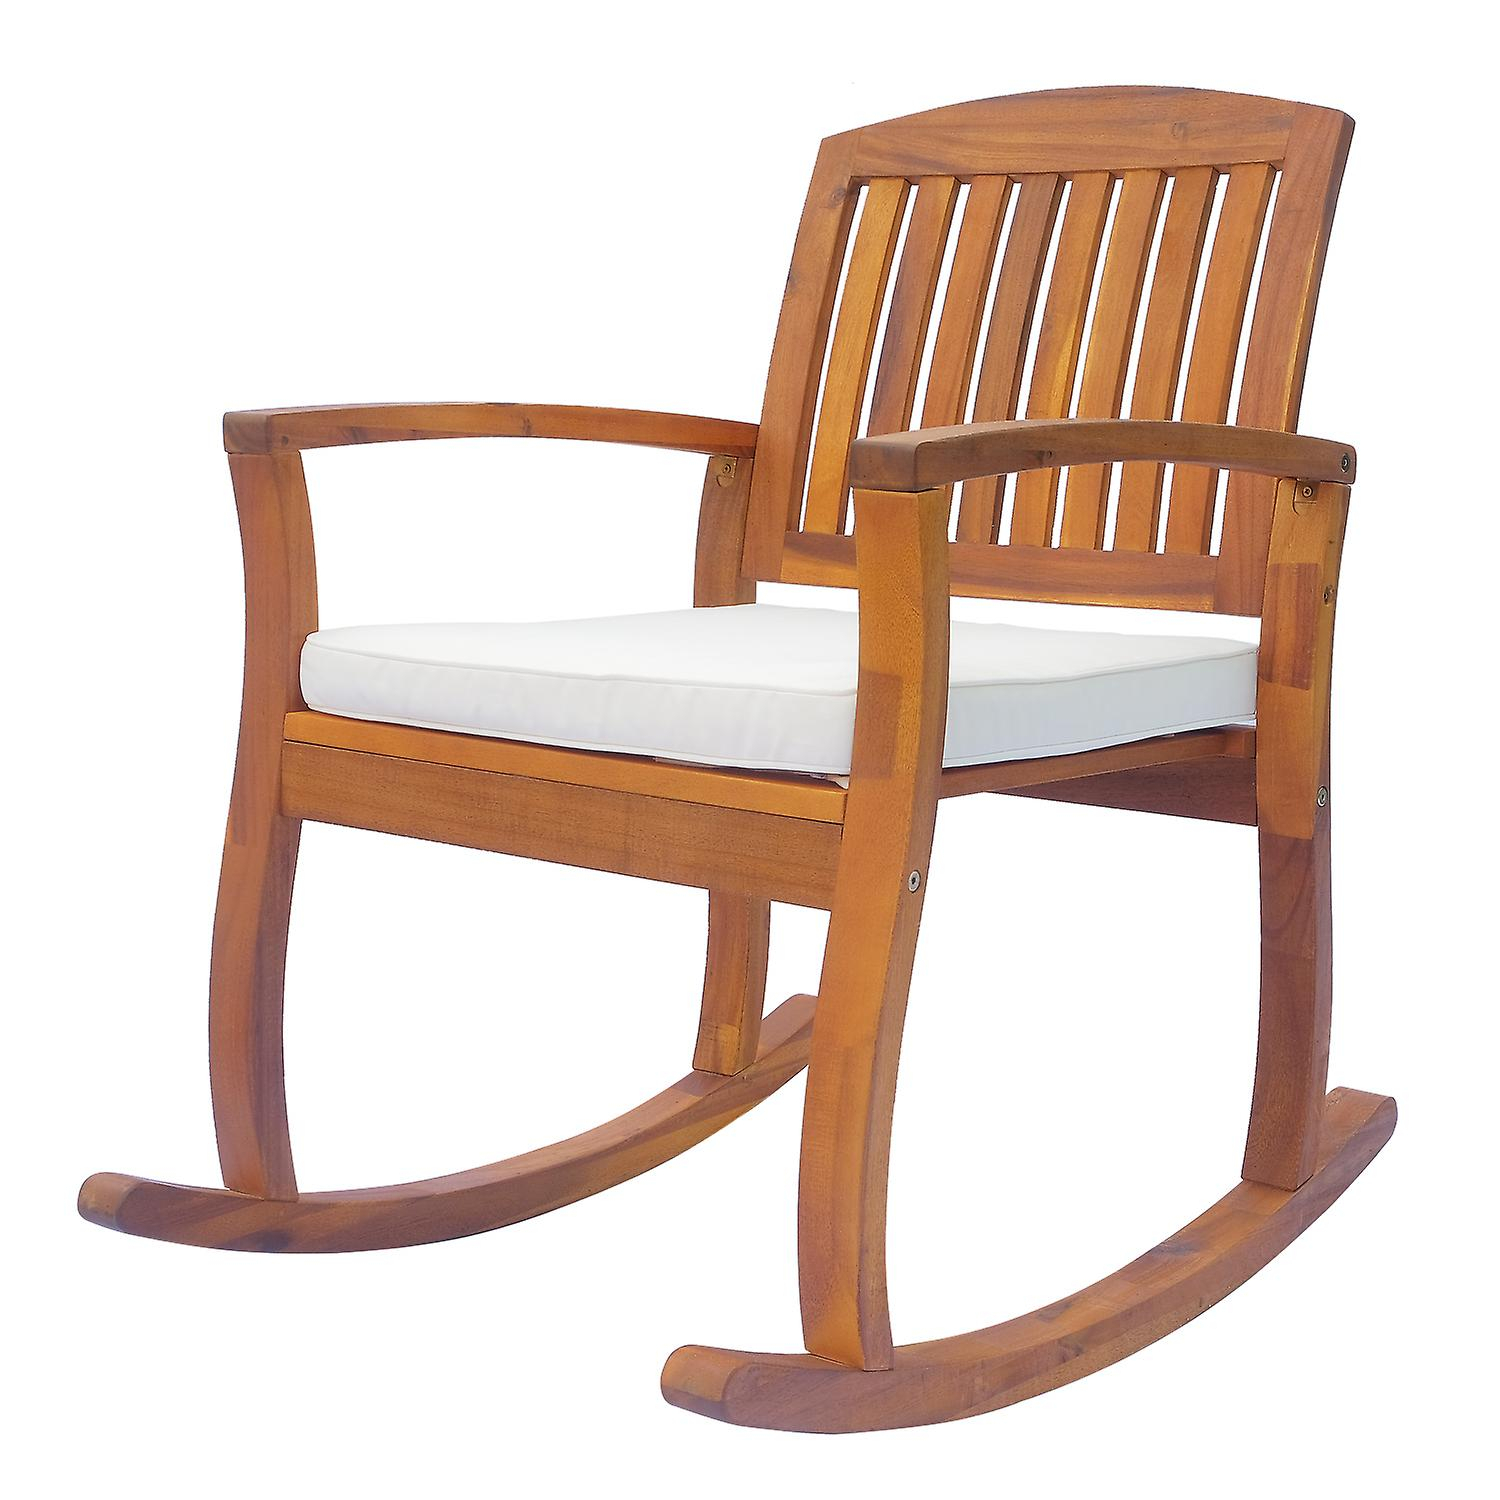 Outsunny Acacia Hardwood Rocking Chair Deck Indoor Outdoor Porch Garden  Slat Cushion Throughout Indoor / Outdoor Porch Slat Rocking Chairs (#15 of 20)